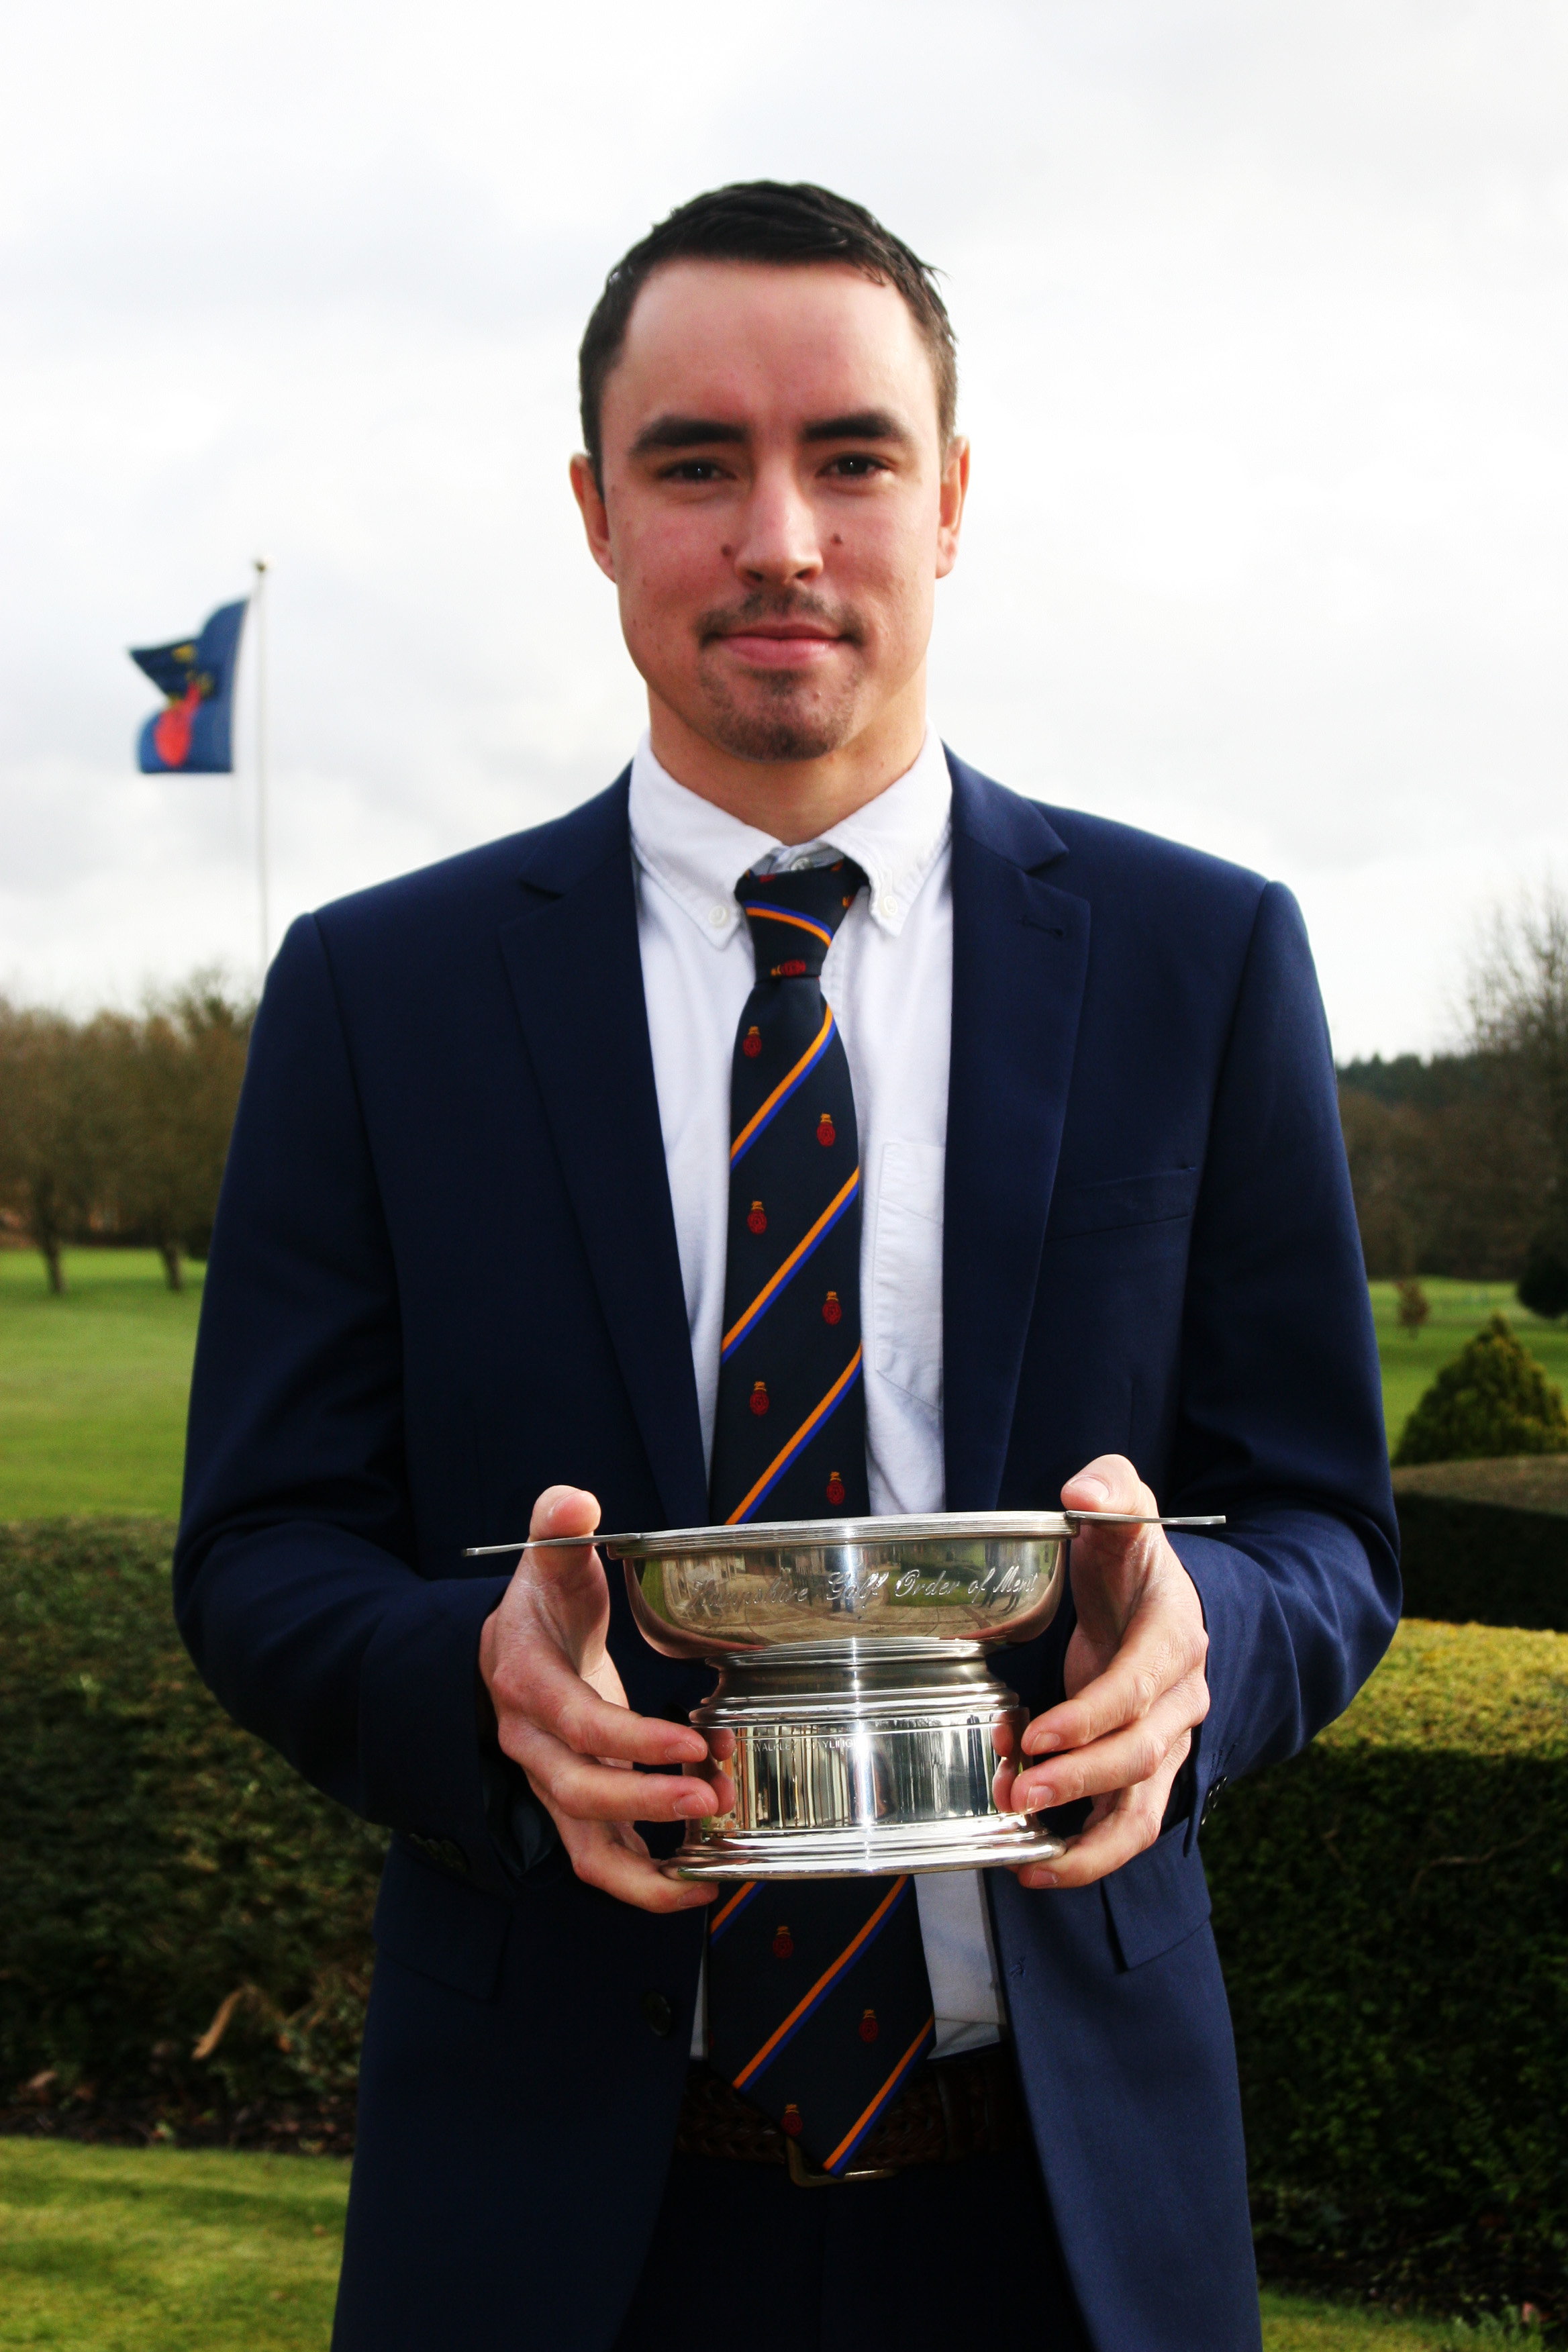 Walkley retains Order of Merit with 19-point victory